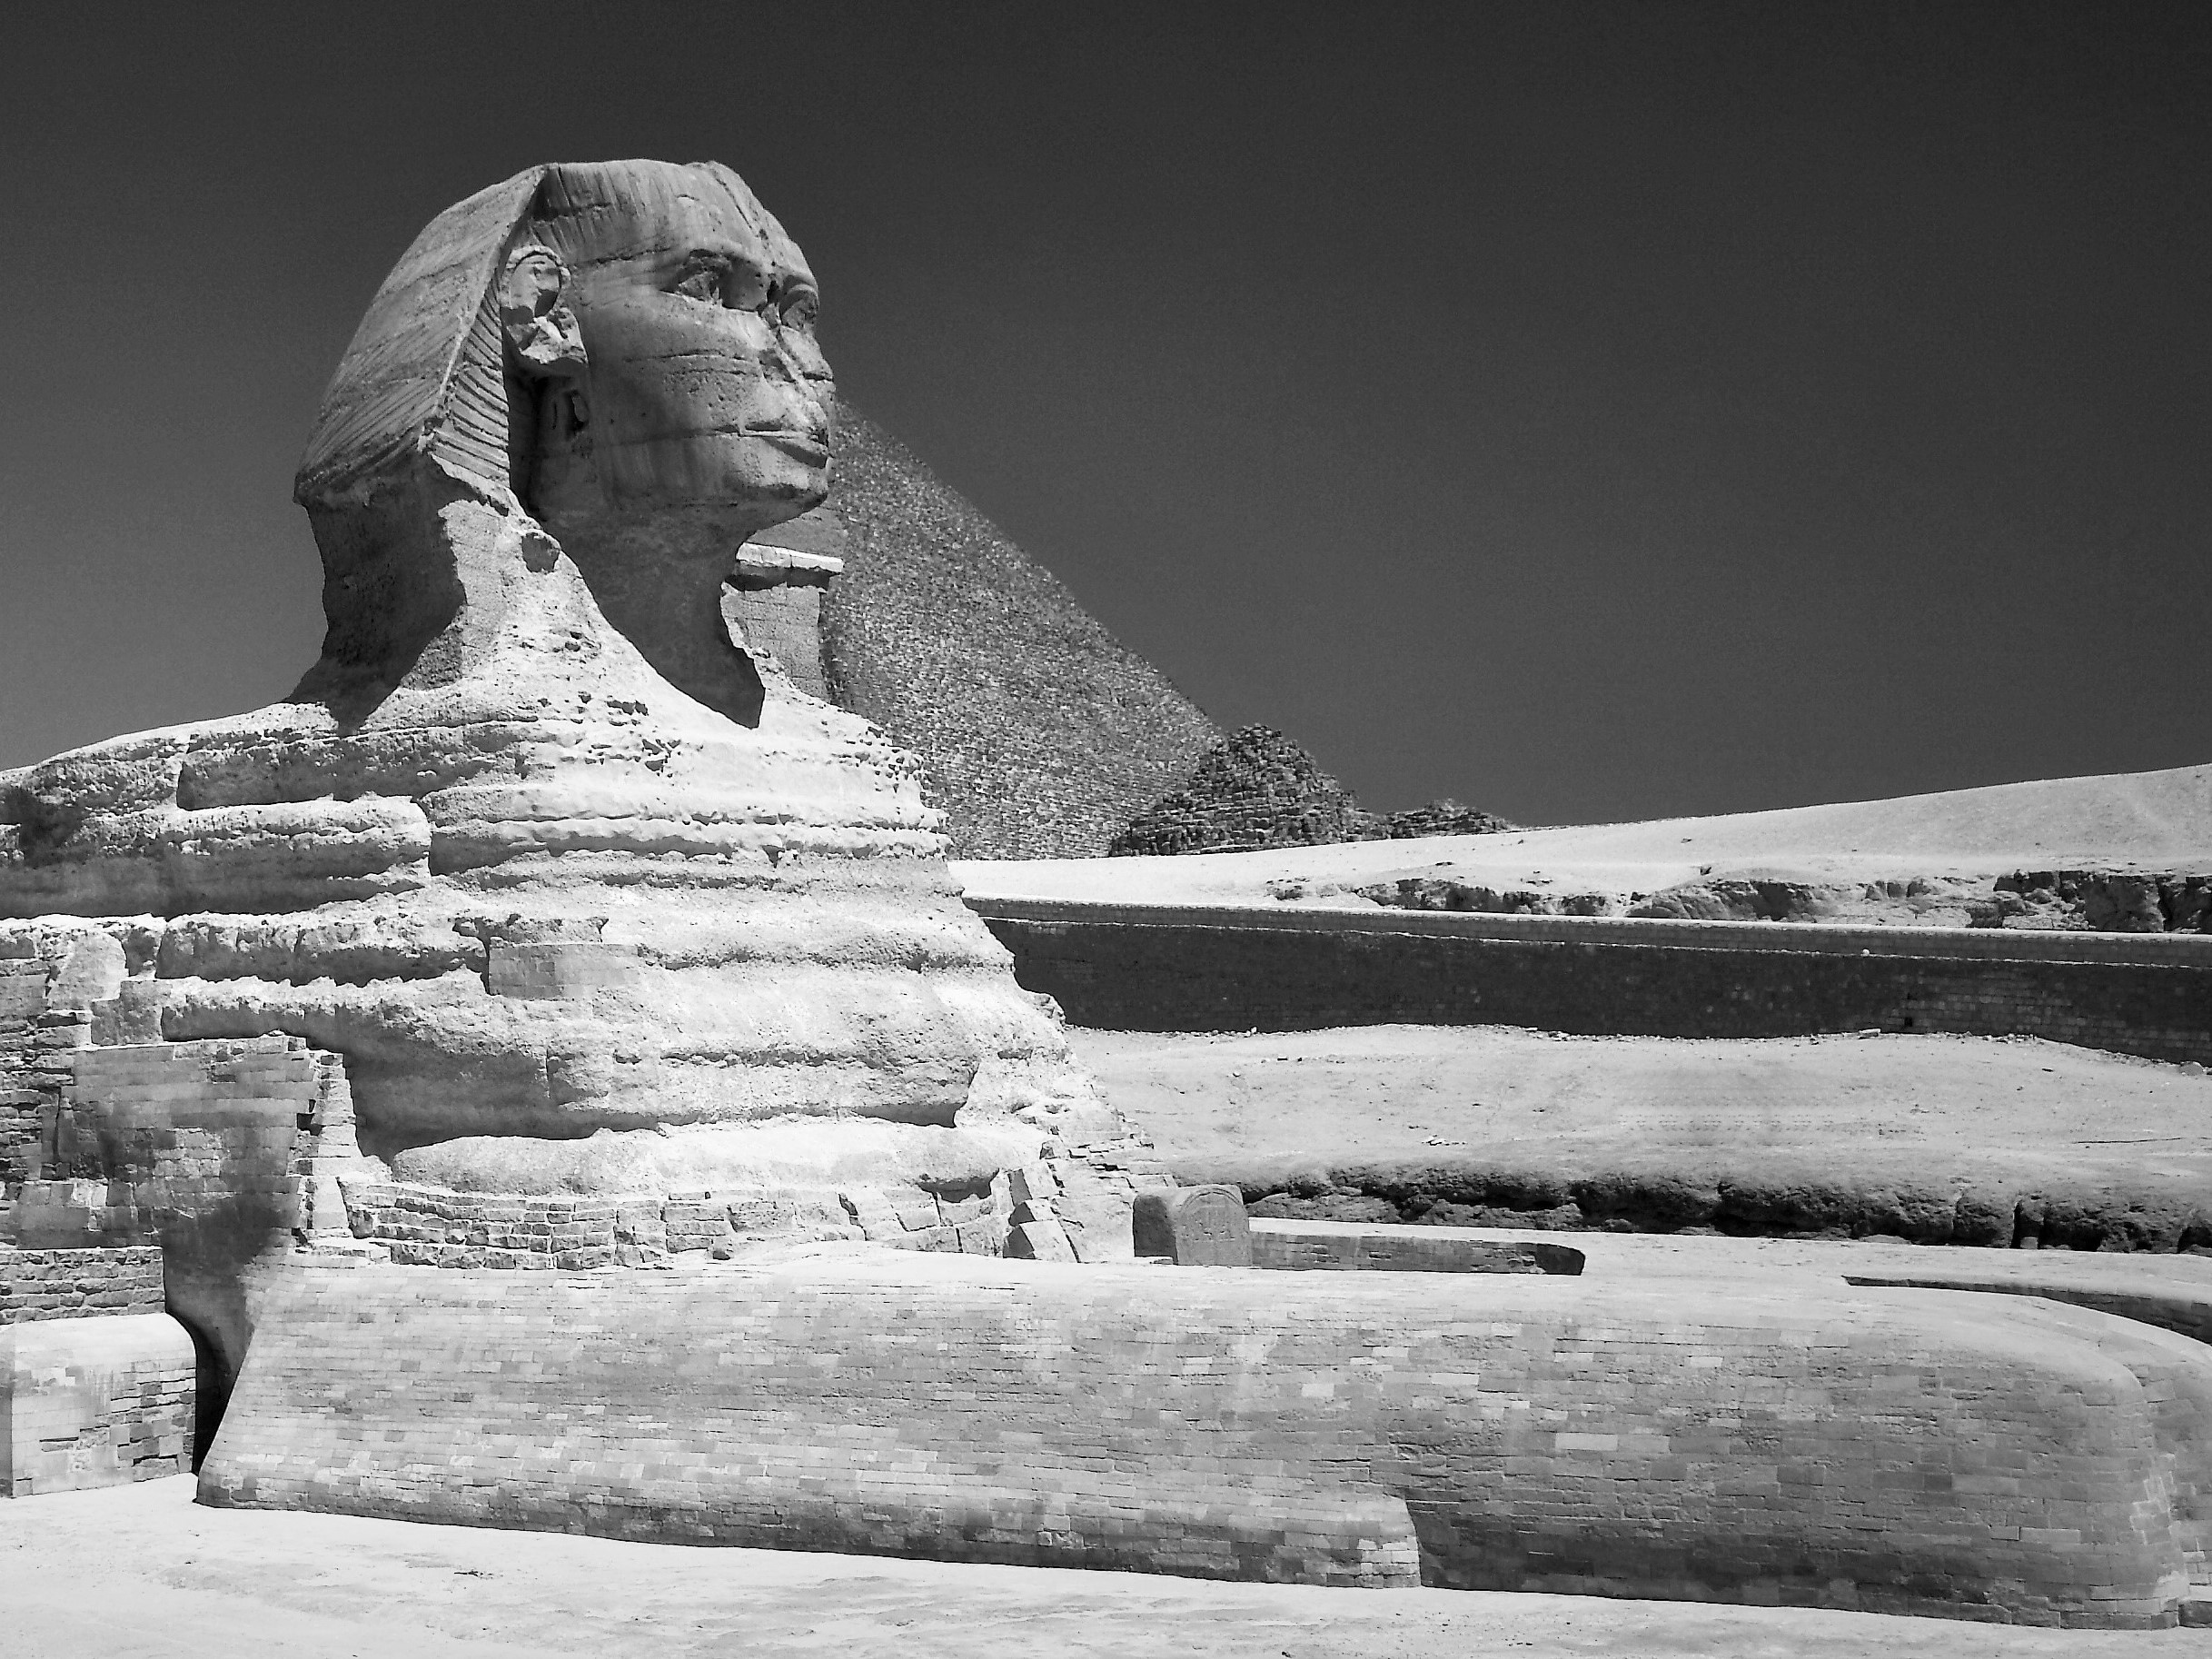 Great_Sphinx_of_Giza_-_20080716a (4).jpg